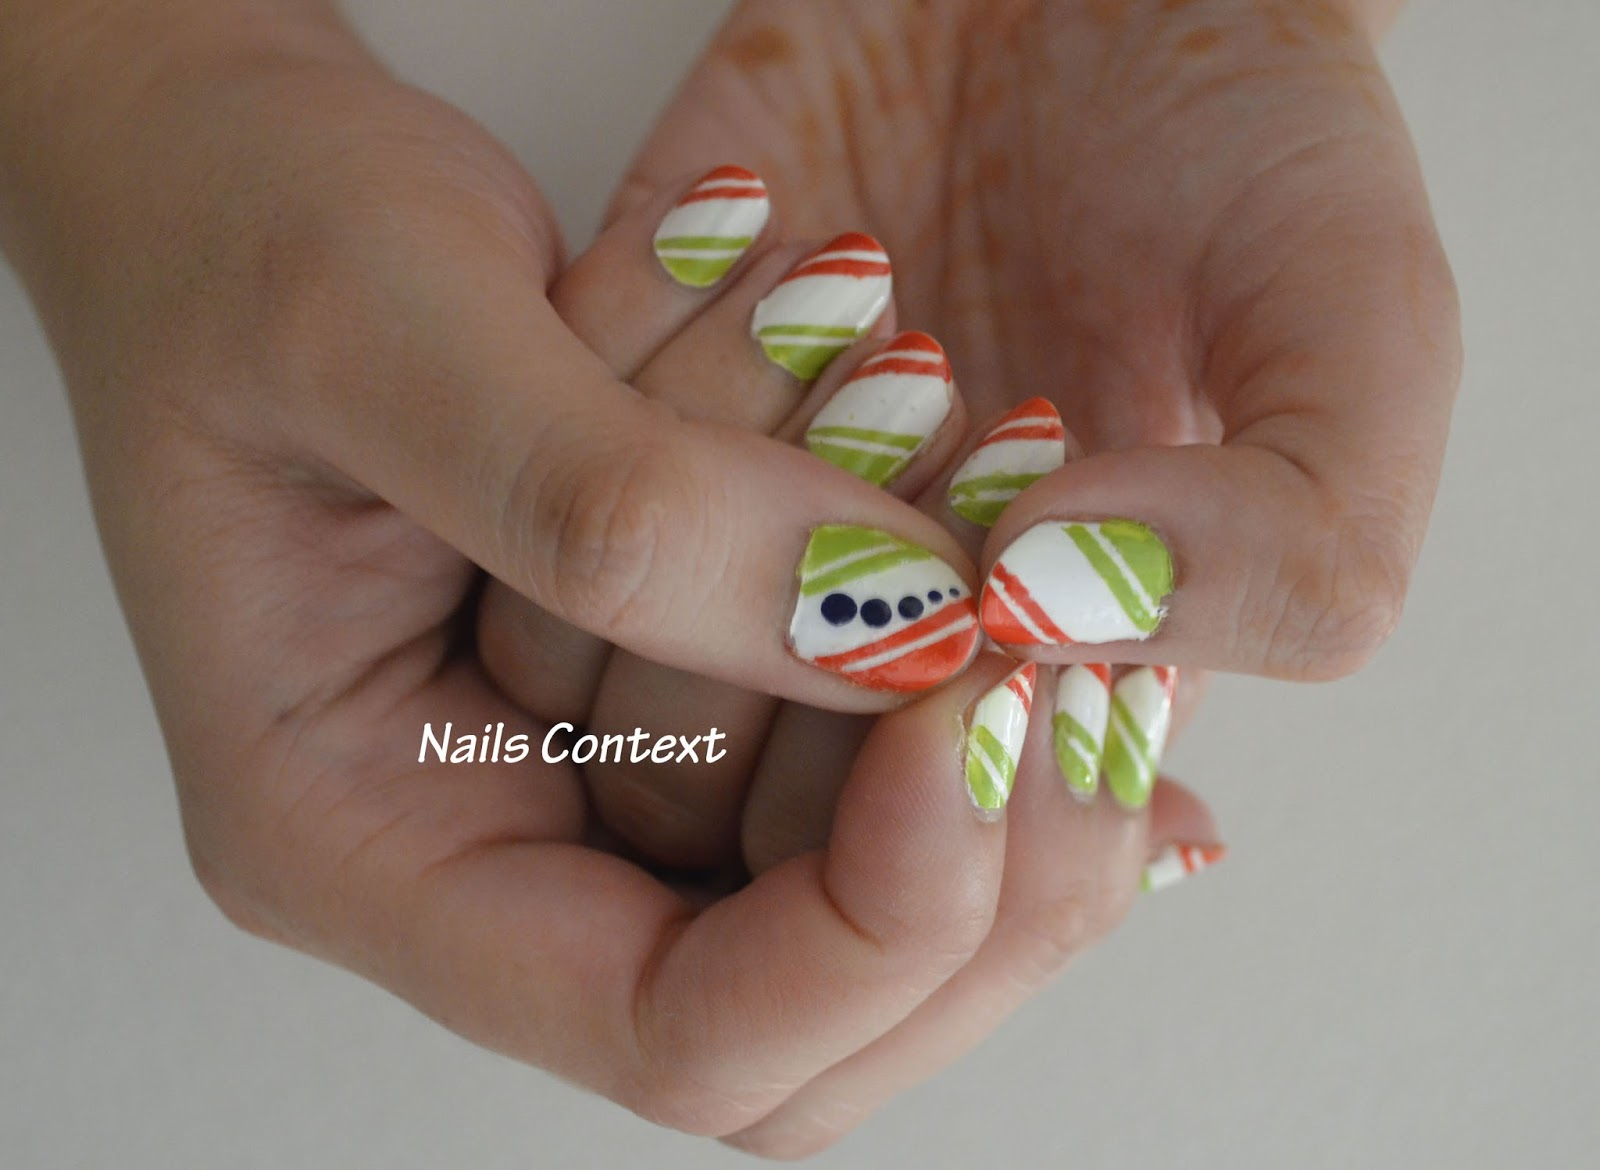 Indian Tricolor nail art- Celebrate the colors of freedom on your nails